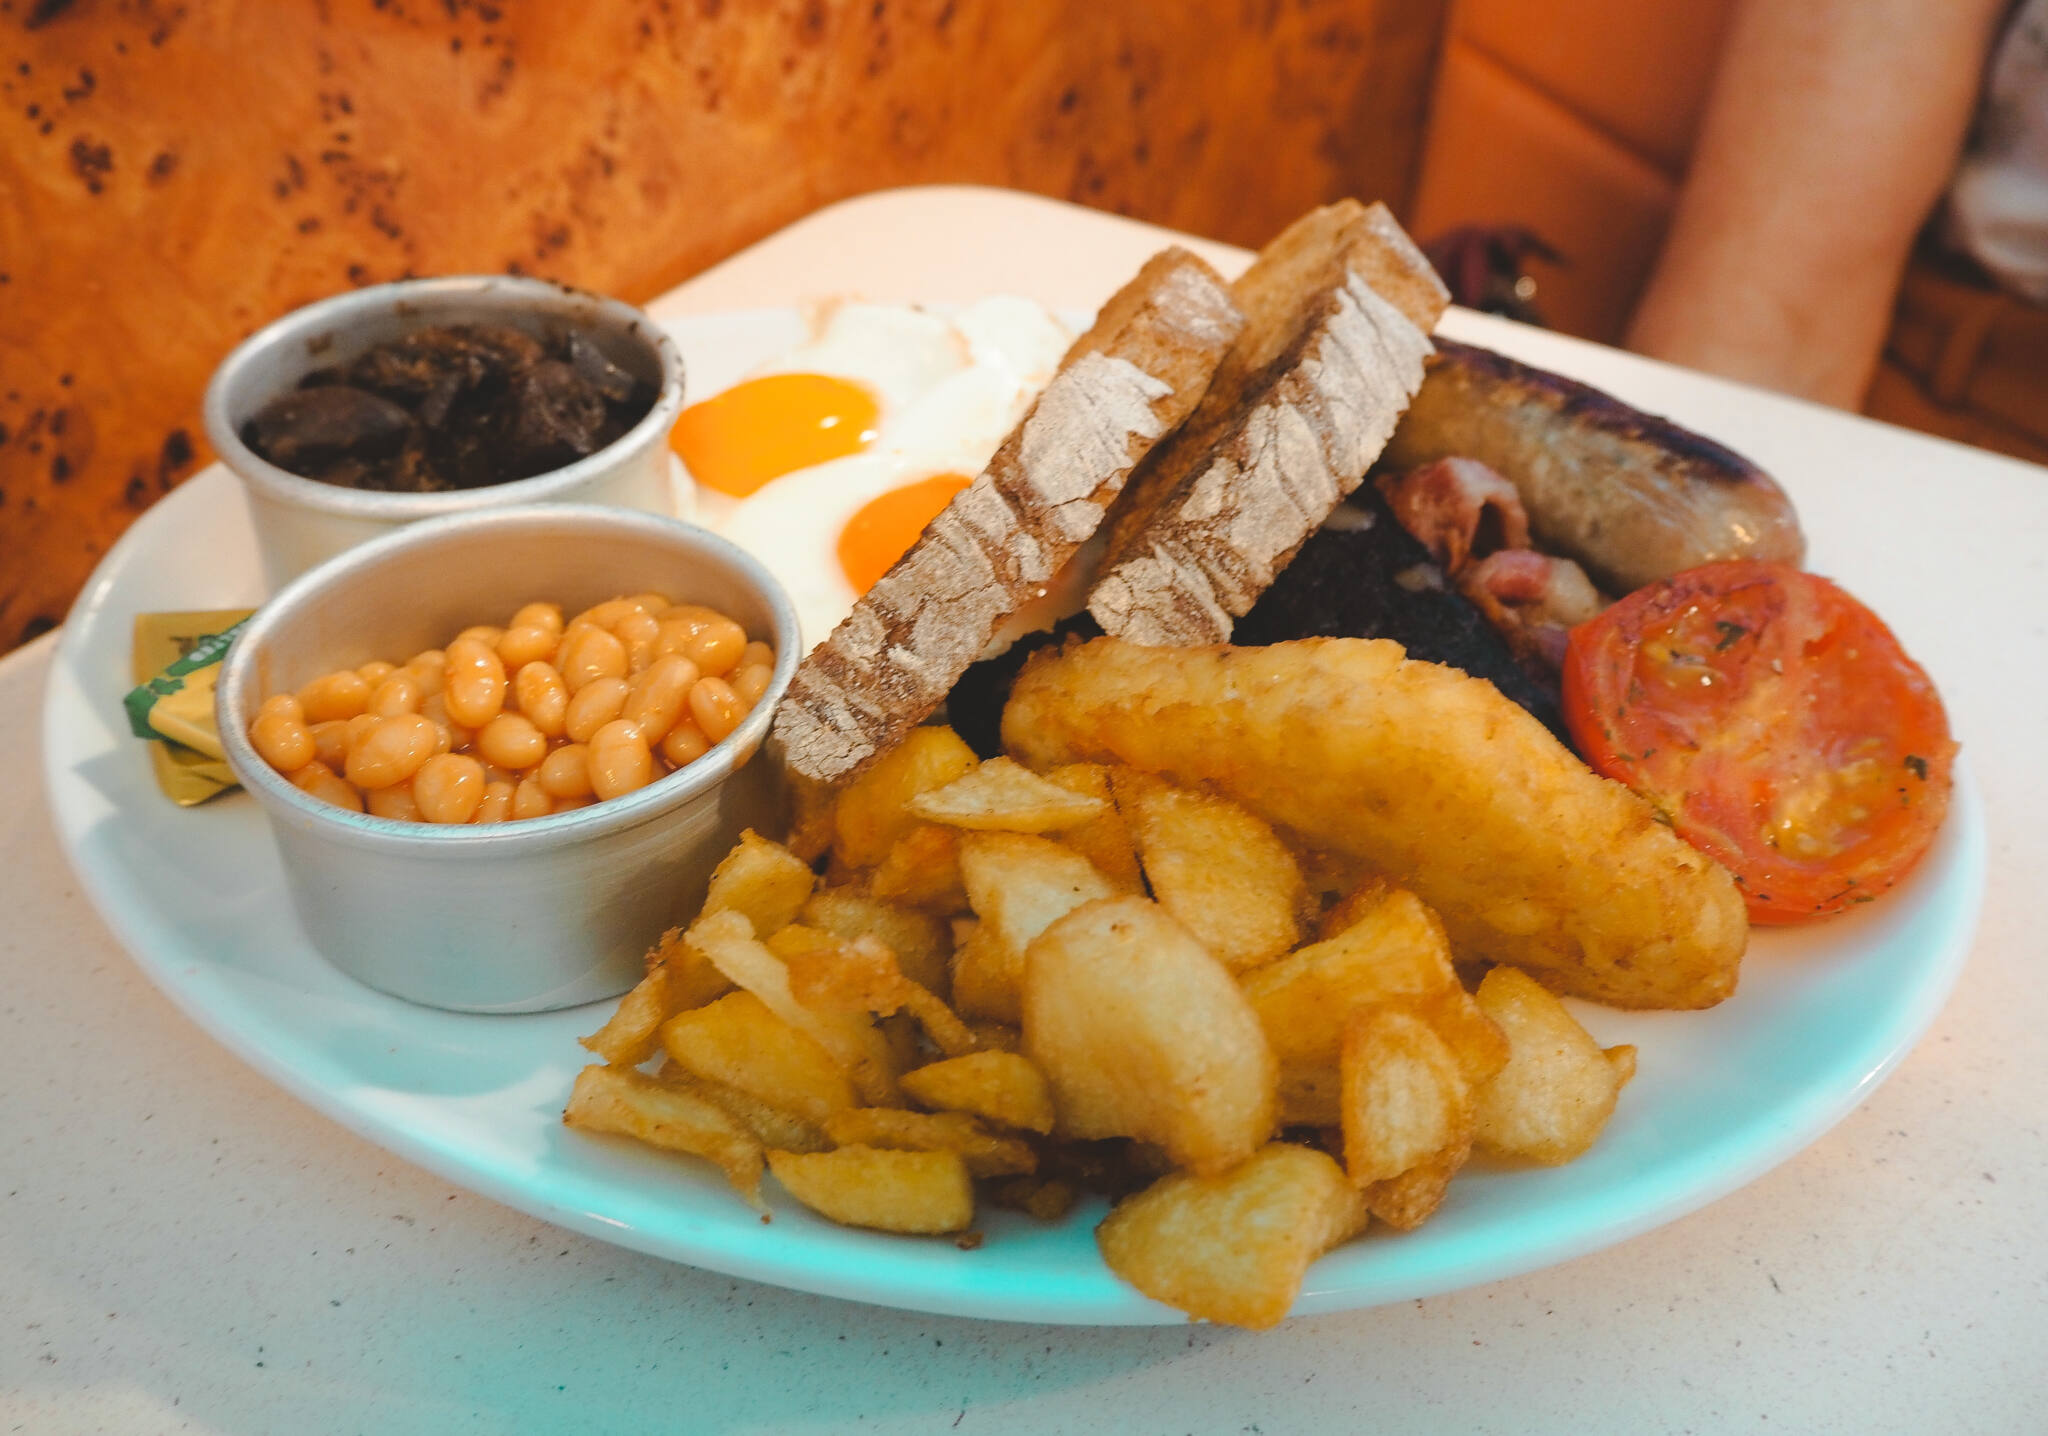 Full English Breakfast on plate with beans, garlic mushrooms, crispy potatoes, hash brown, fried eggs, toasts, tomato, sausage and bacon